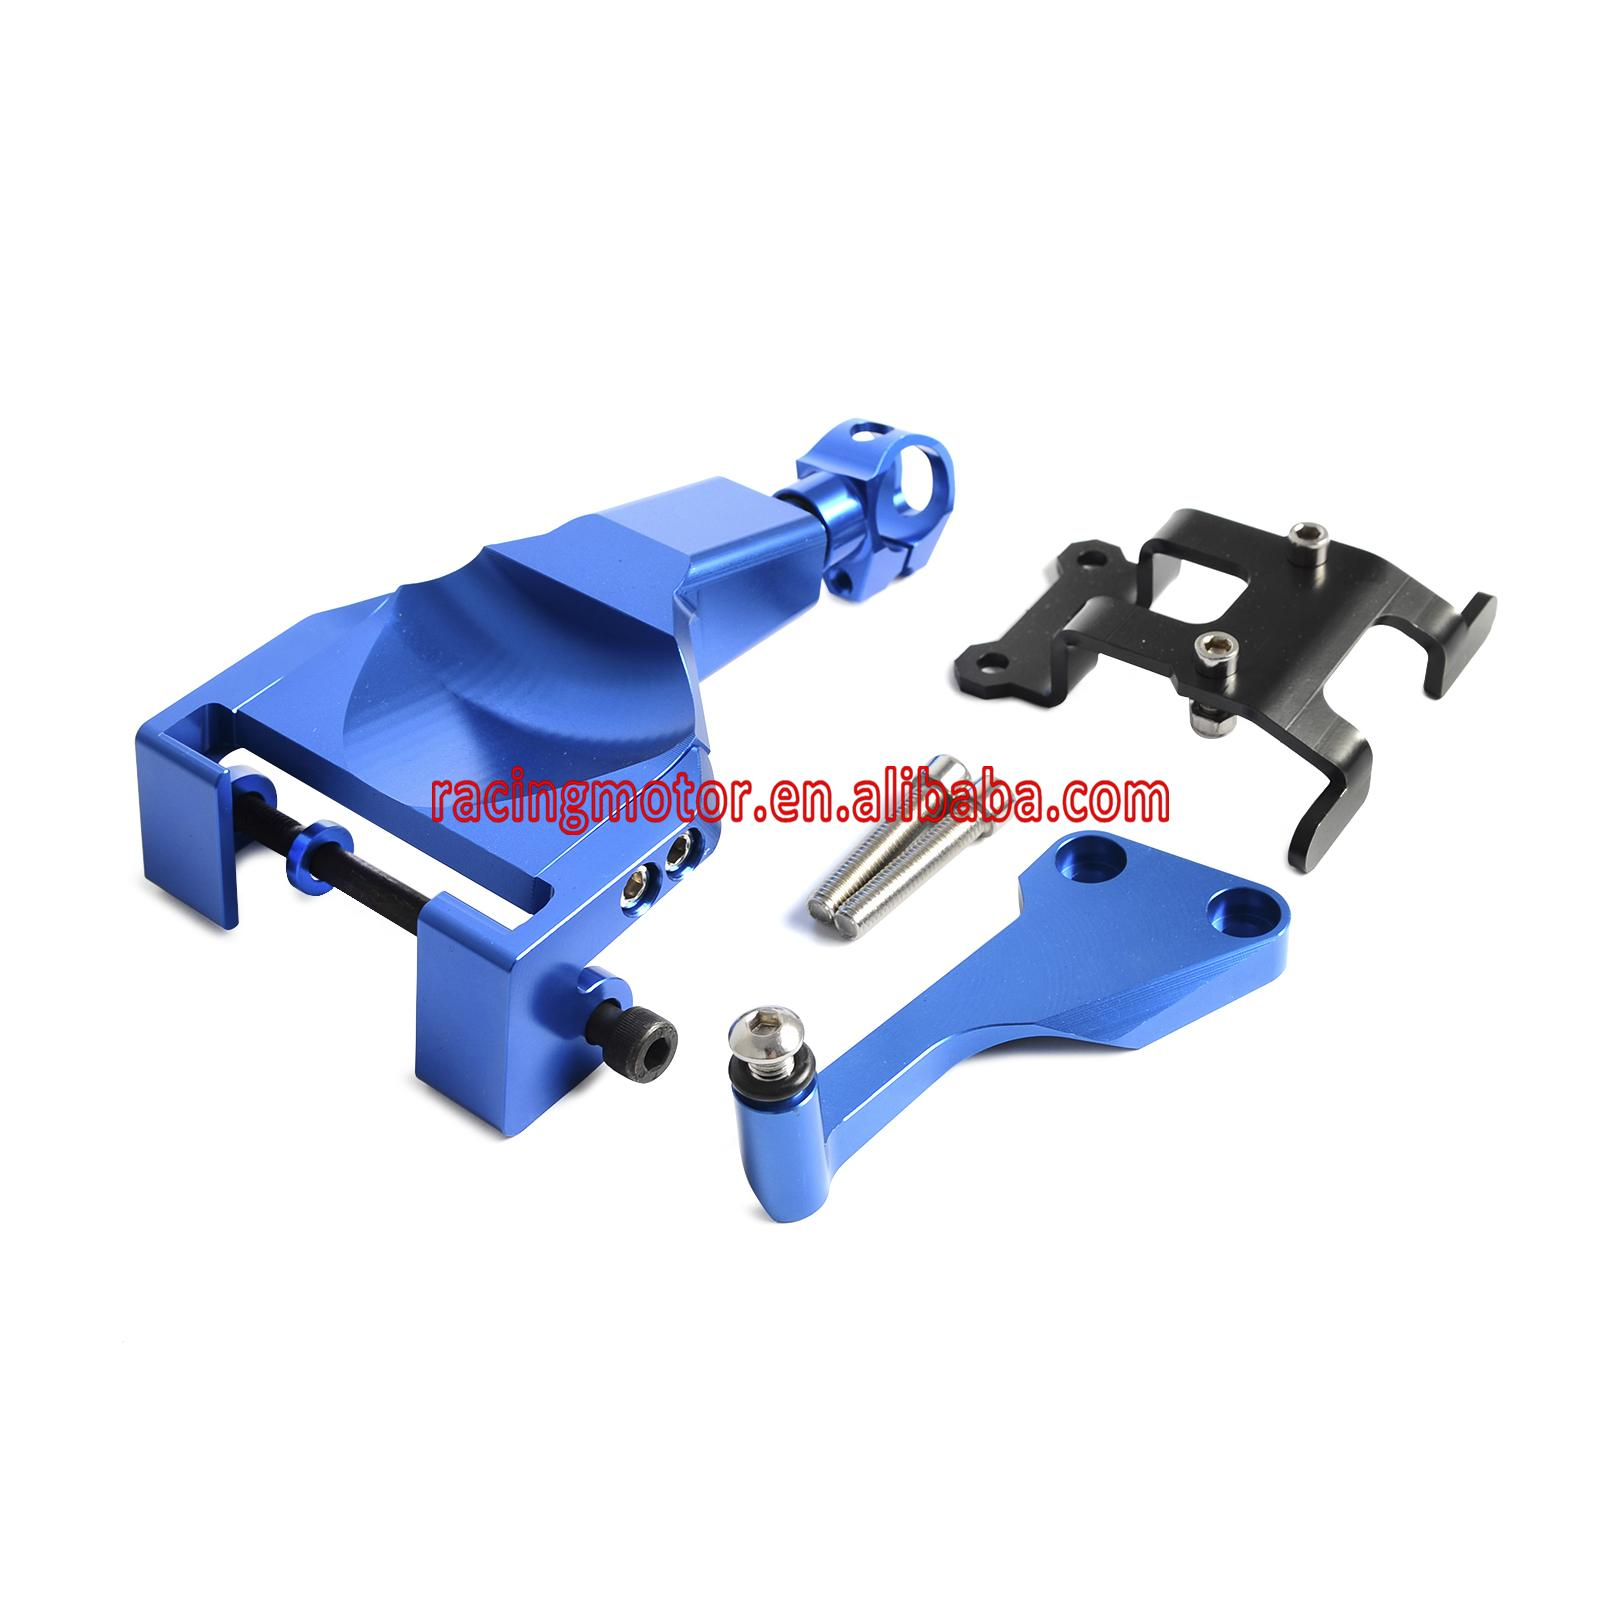 ФОТО Blue Motorcycle Stablizer Damper Mounting Bracket Kit For Yamaha MT-07 MT07 MOTO CAGE 2014 2015 2016